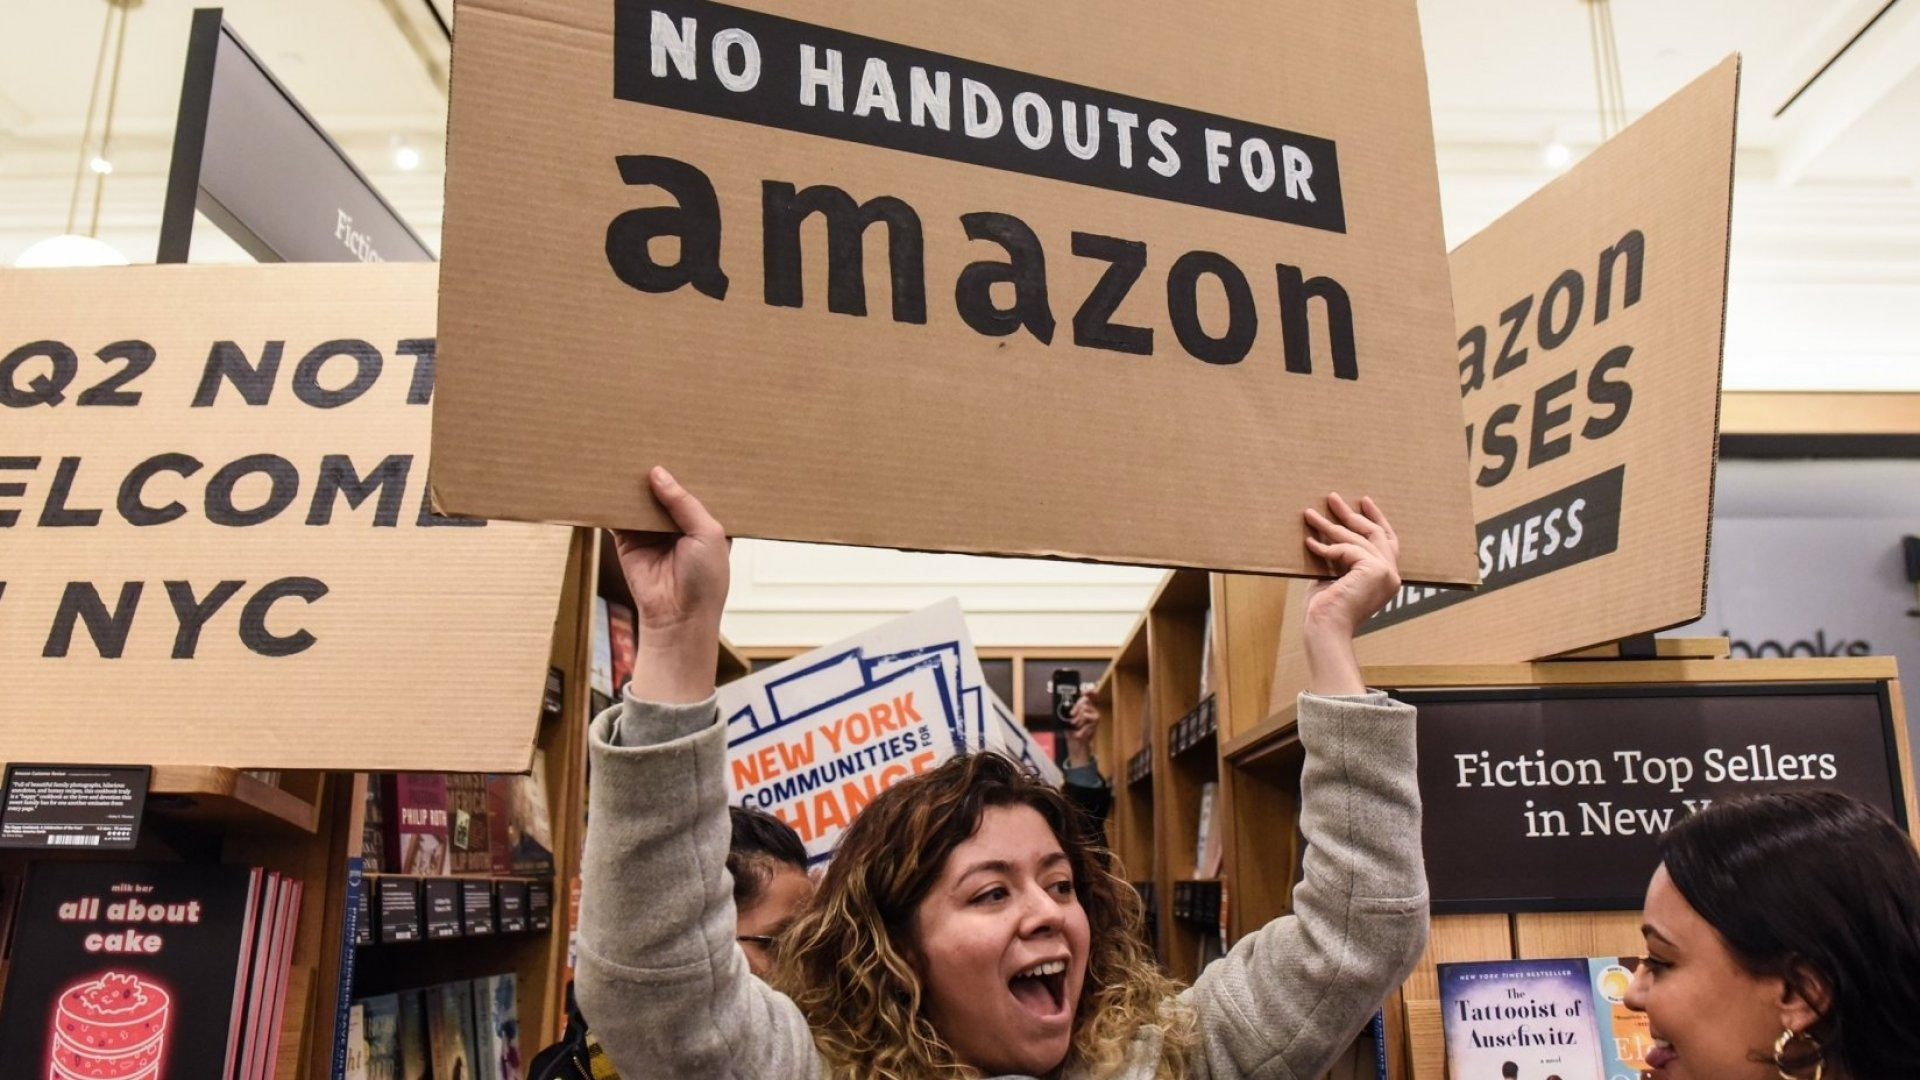 With 4 Short Words, Amazon Just Revealed the Brutal Truth About Its Decision to Cancel HQ2 in New York. (So Many People Don't Want to Admit This)